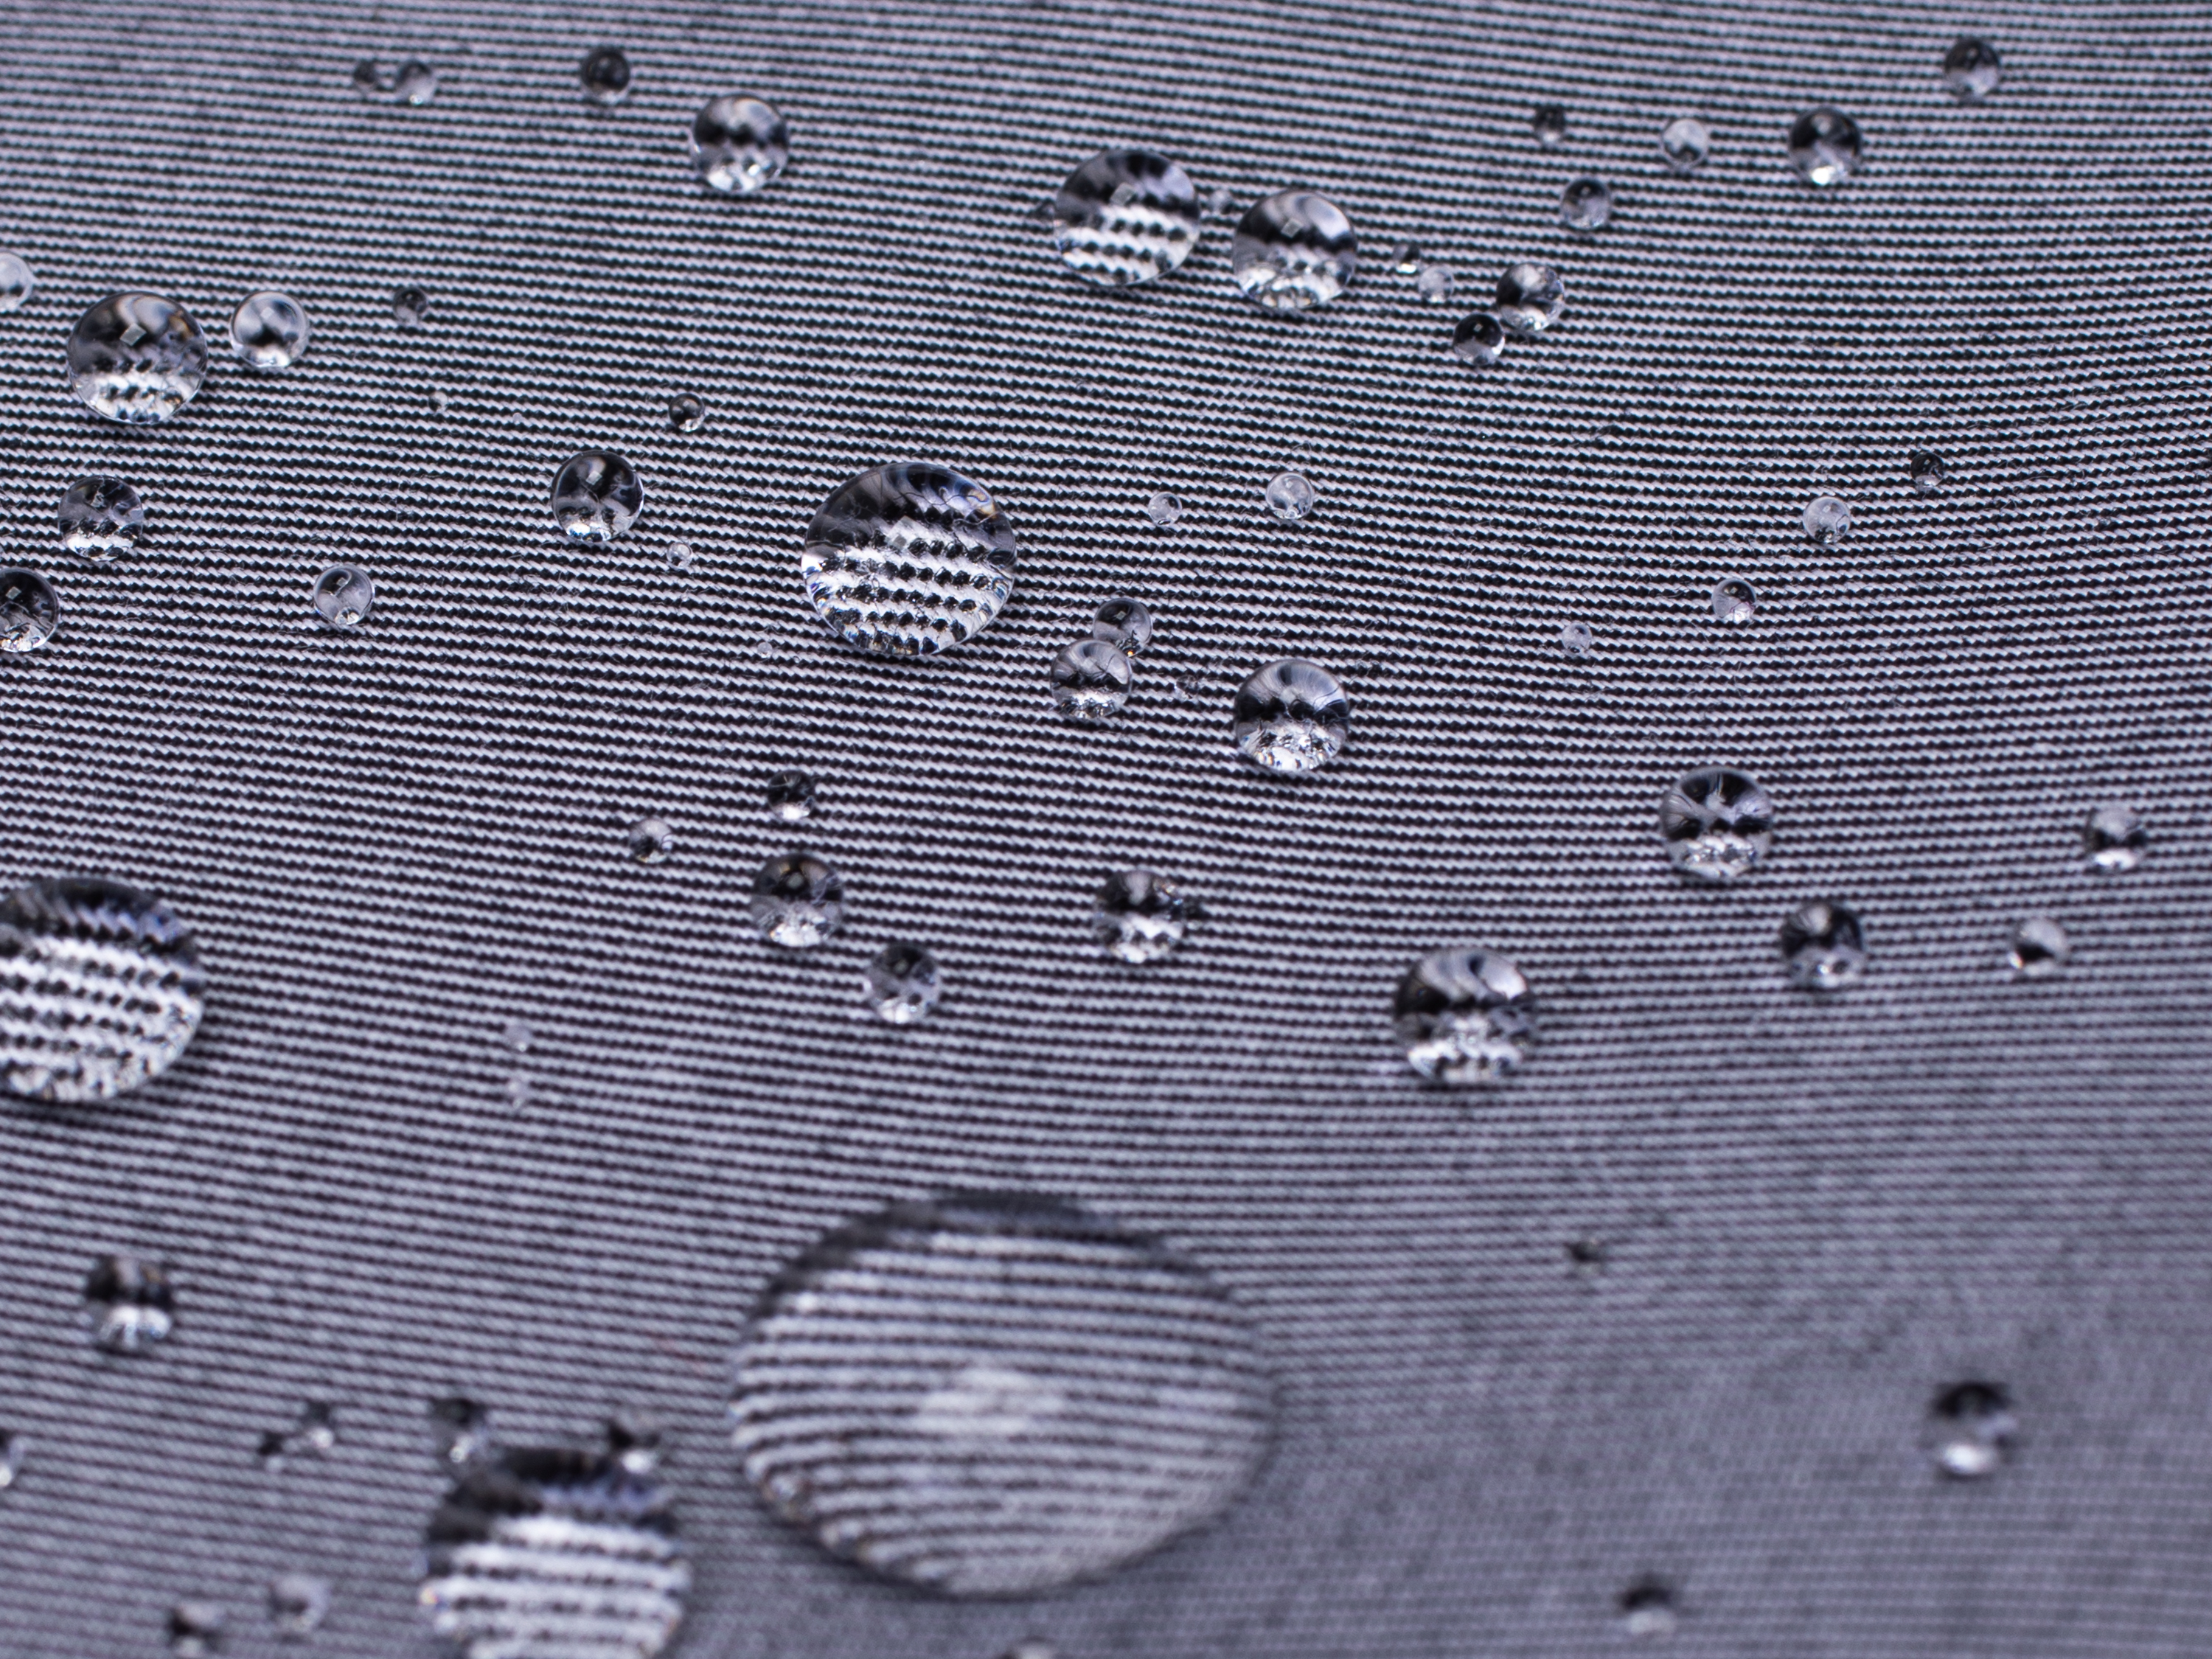 Buy tailor made shirts online - NANO X WATER RESISTANT (NEW) - NANO Grey